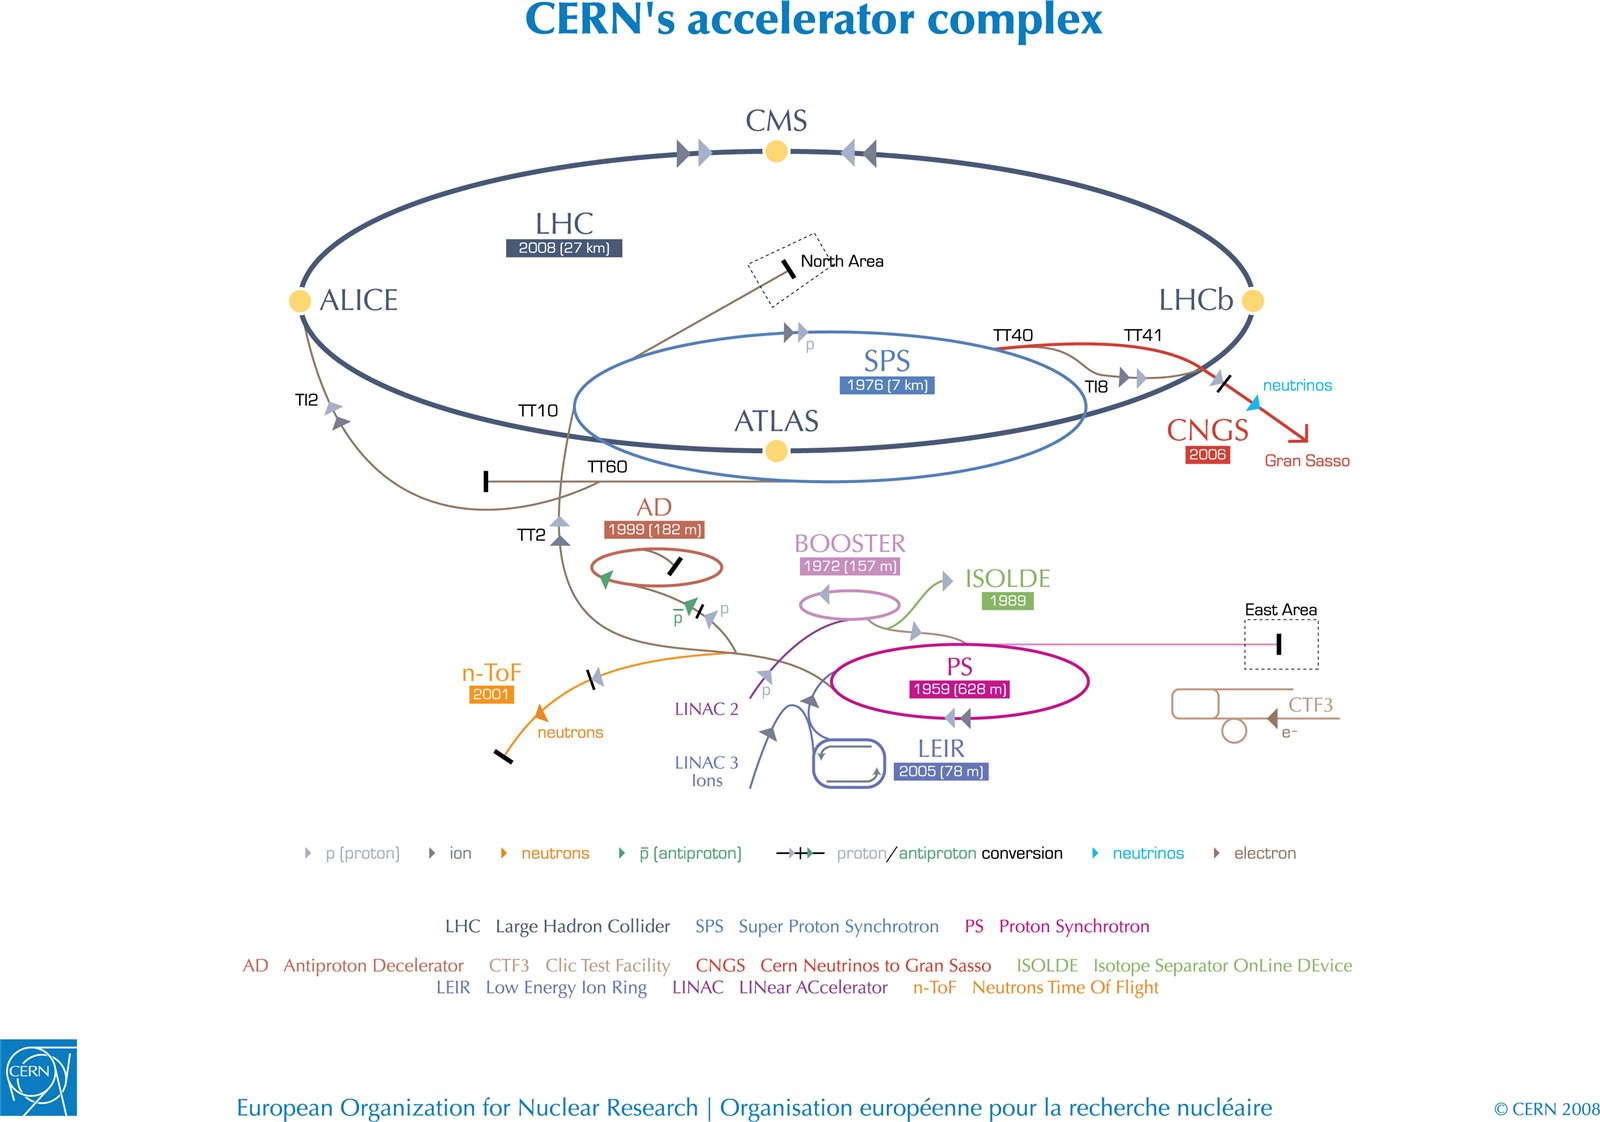 Accelerators For Society Nuclear Power Plant Simple Diagram Cern Acc Complex